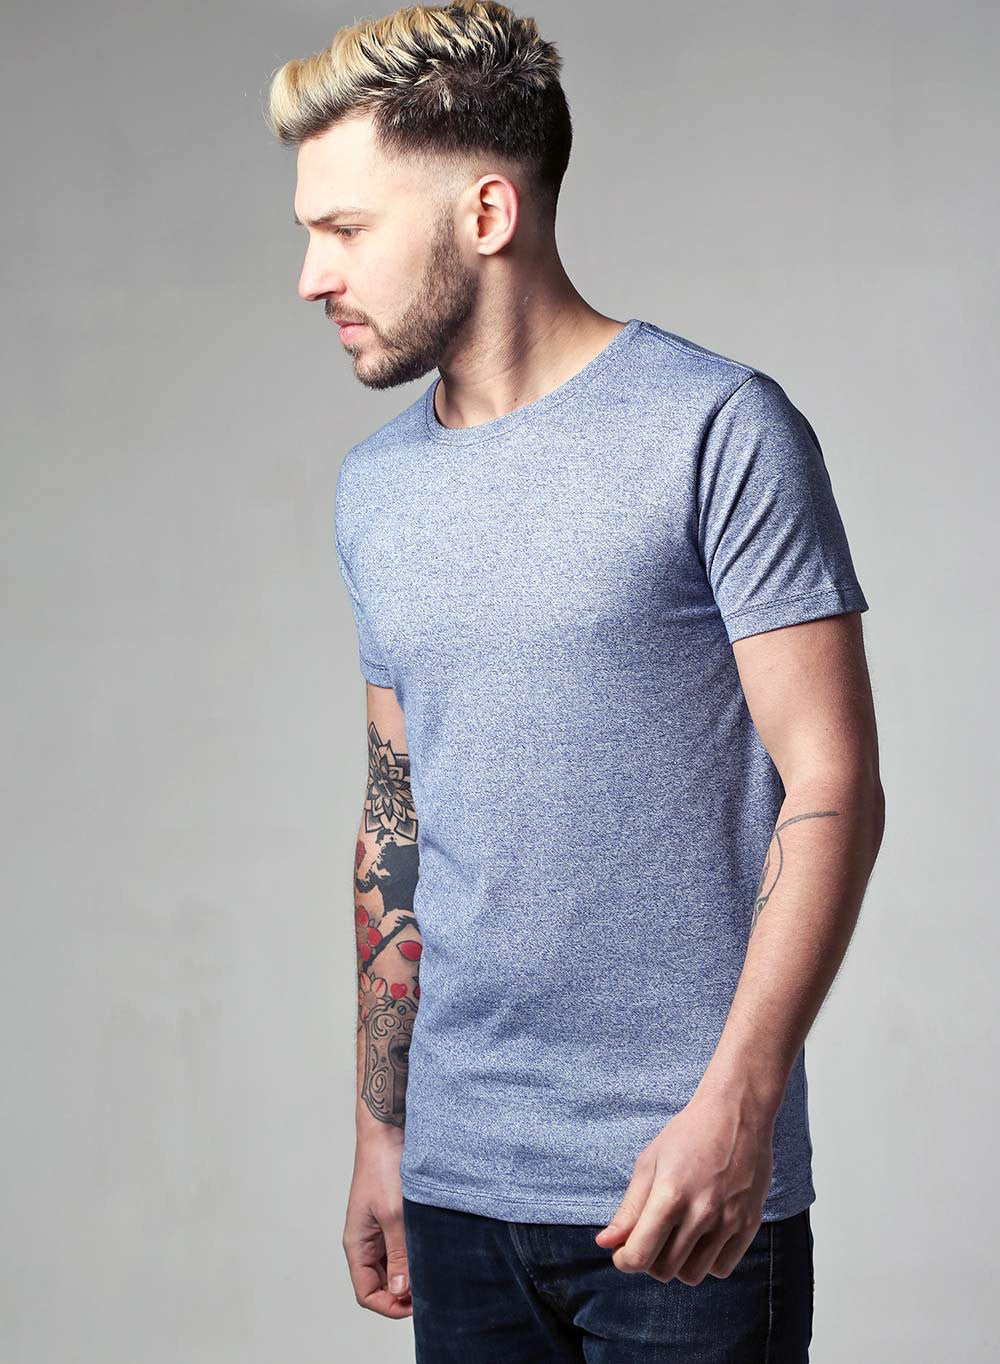 Lindbergh Slim Fit Blue Marl T-shirt - LoveClothing.com - 1